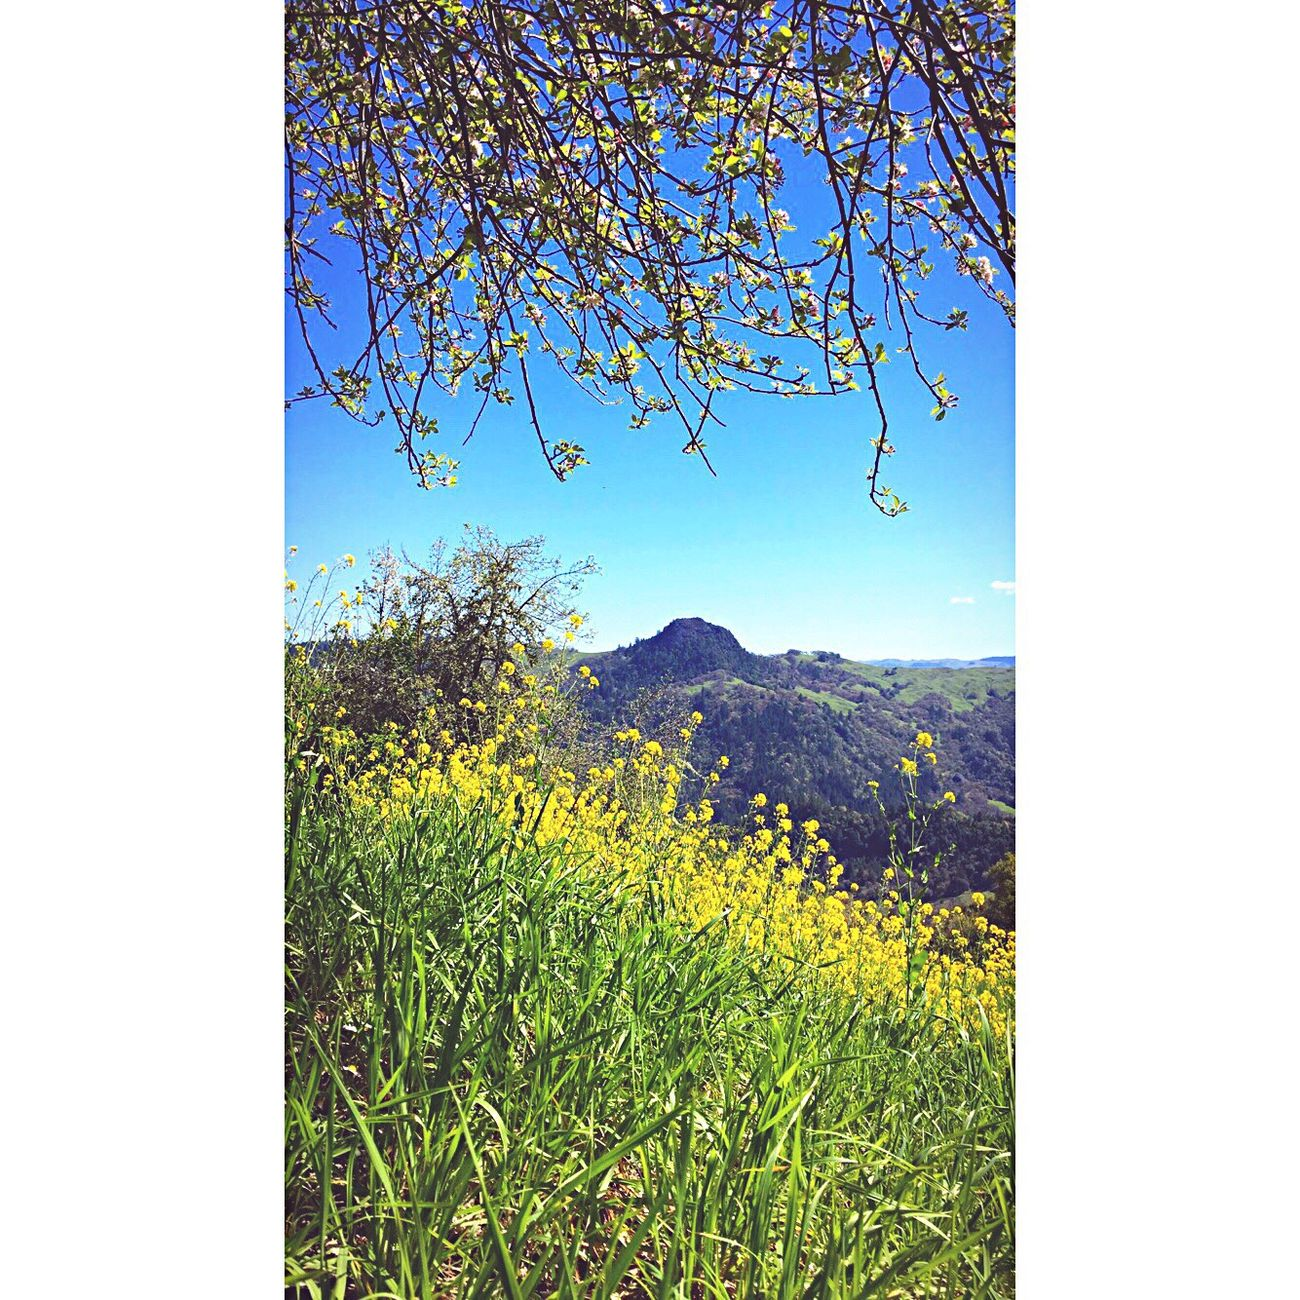 Beauty In Nature No People Scenics Homesweethome Day Nature Perfectview Outdoors Tranquility New Spot EyeEmNewHere